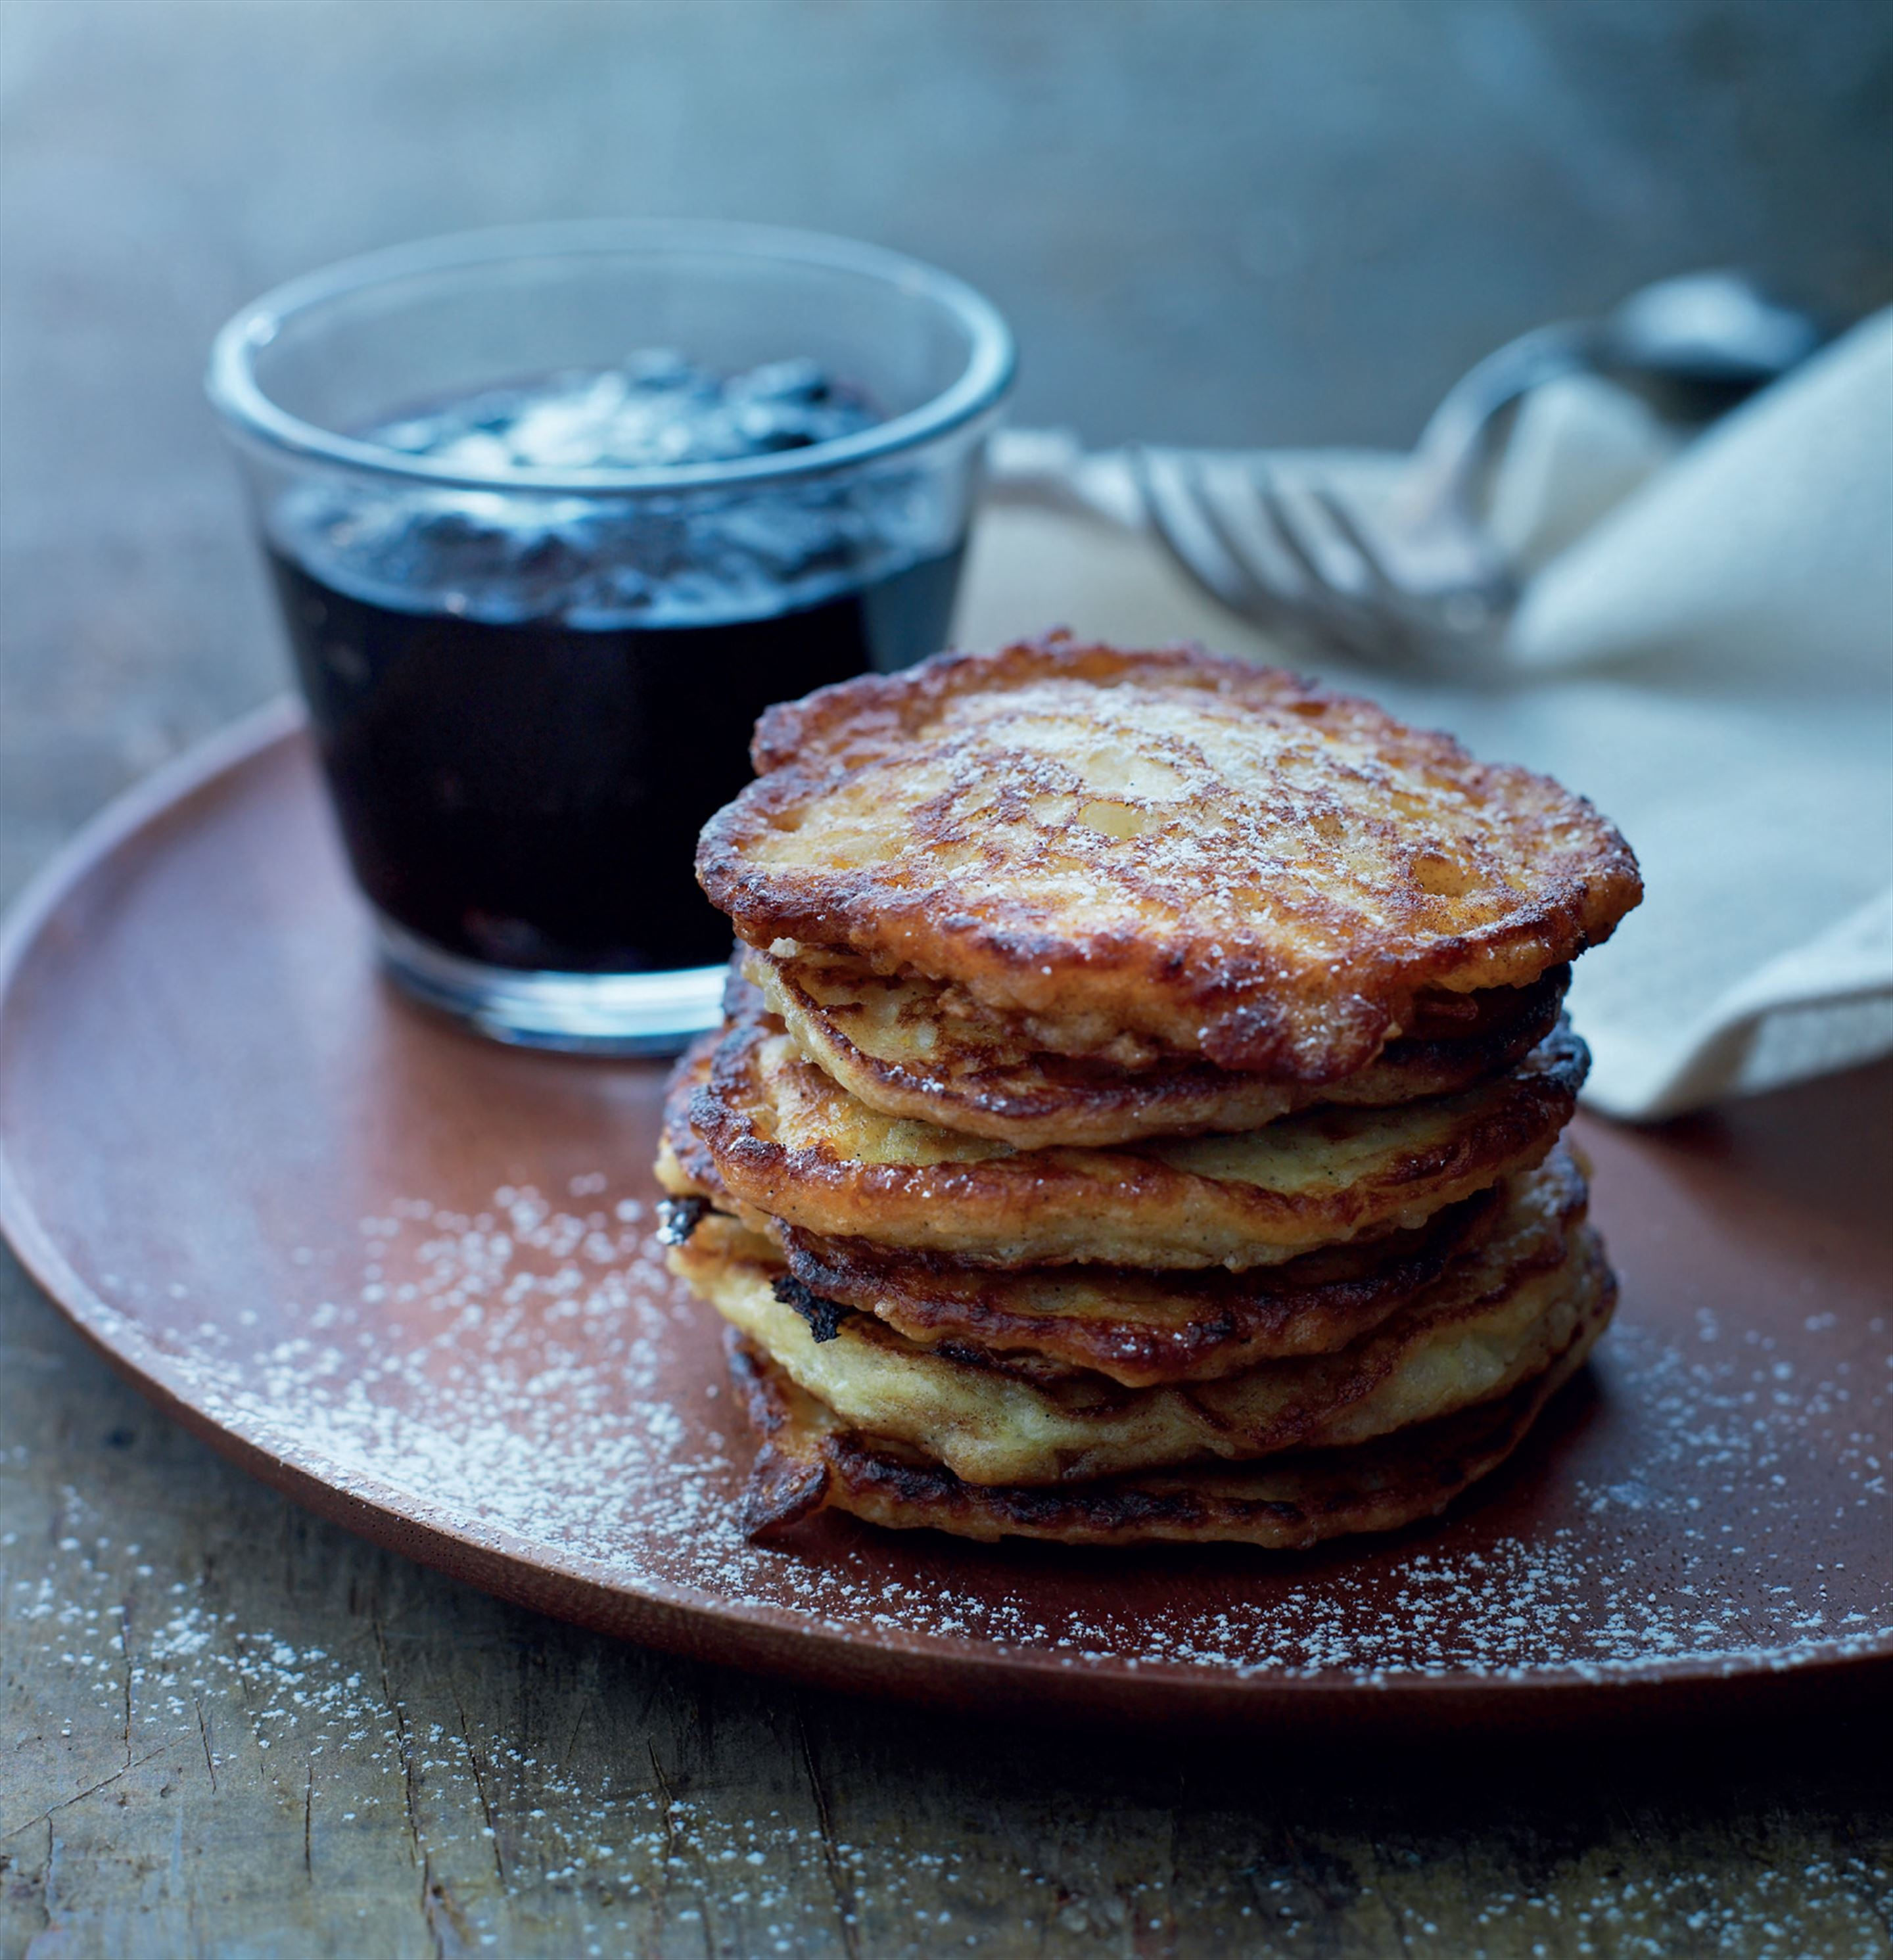 Sweet rice pancakes with blueberry compote